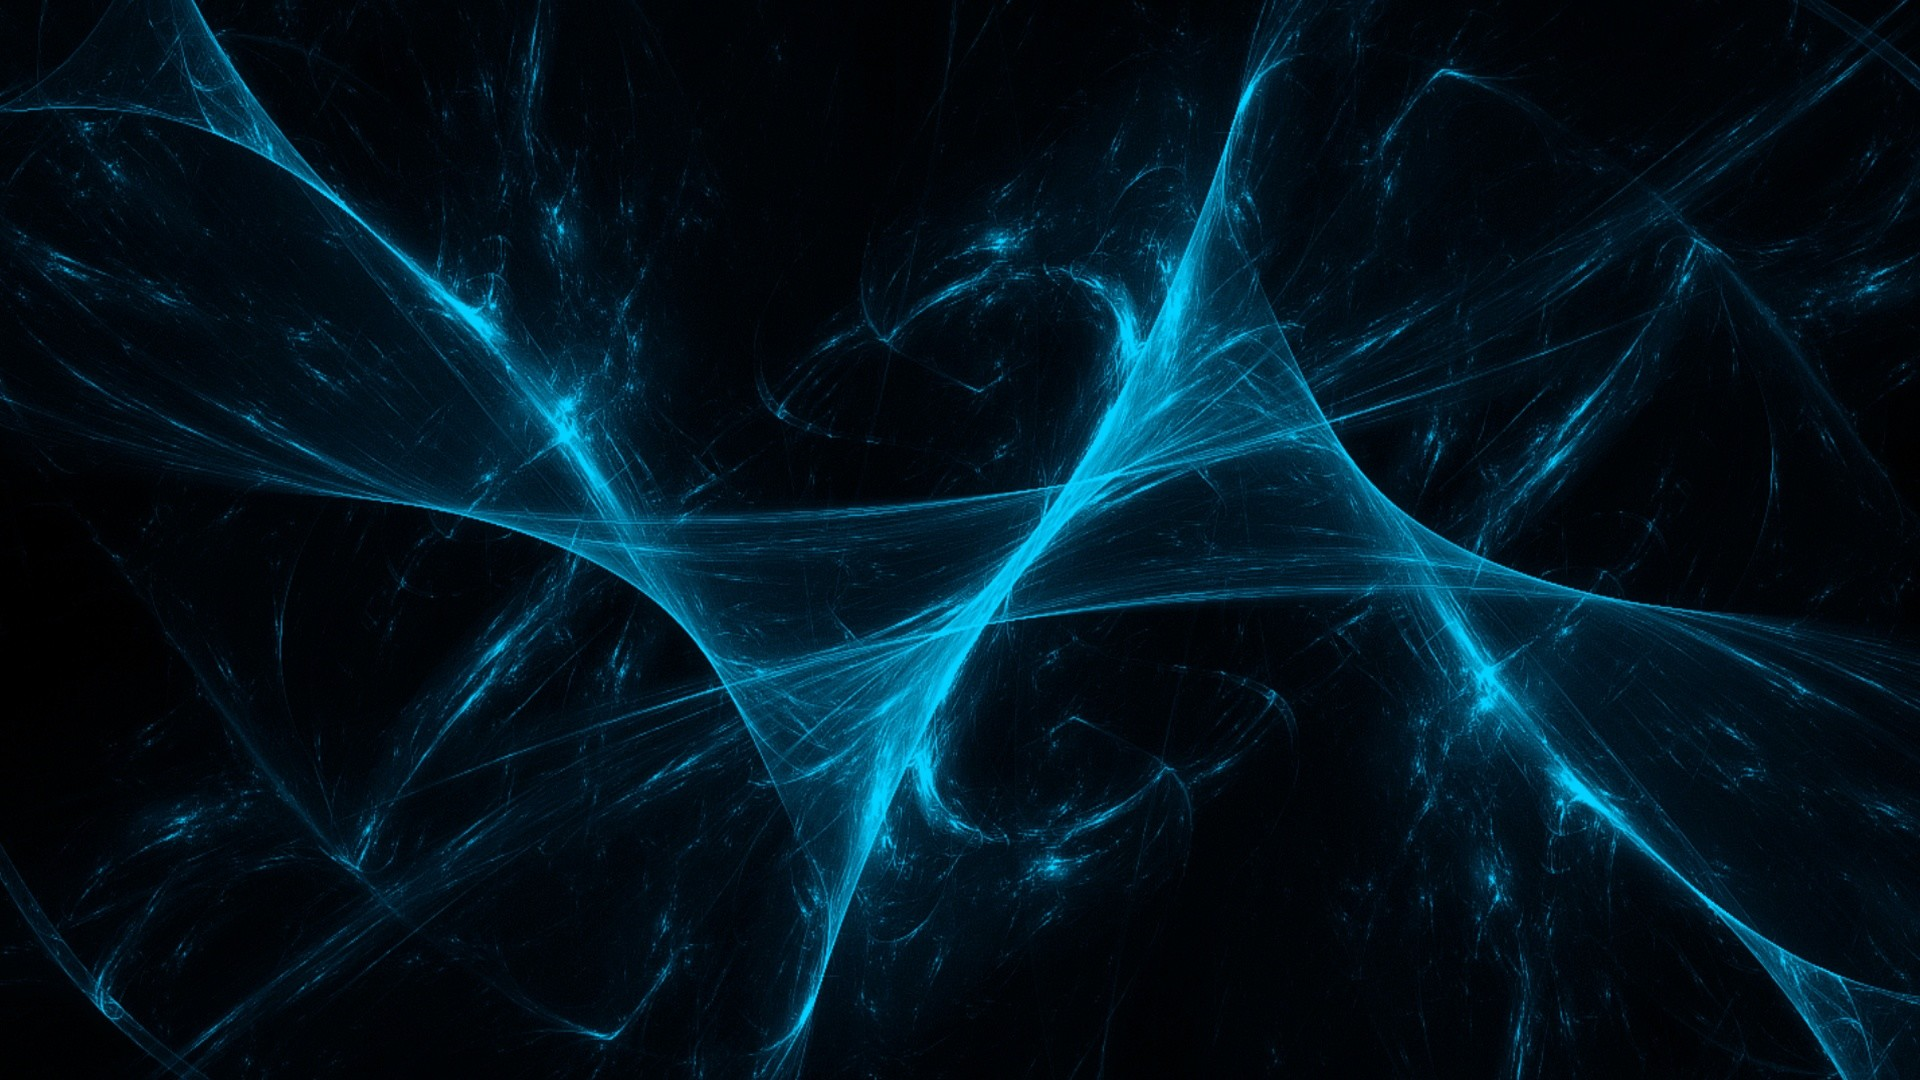 hd wallpaper ws abstract is an HD wallpaper posted in Abstract category.  You can edit